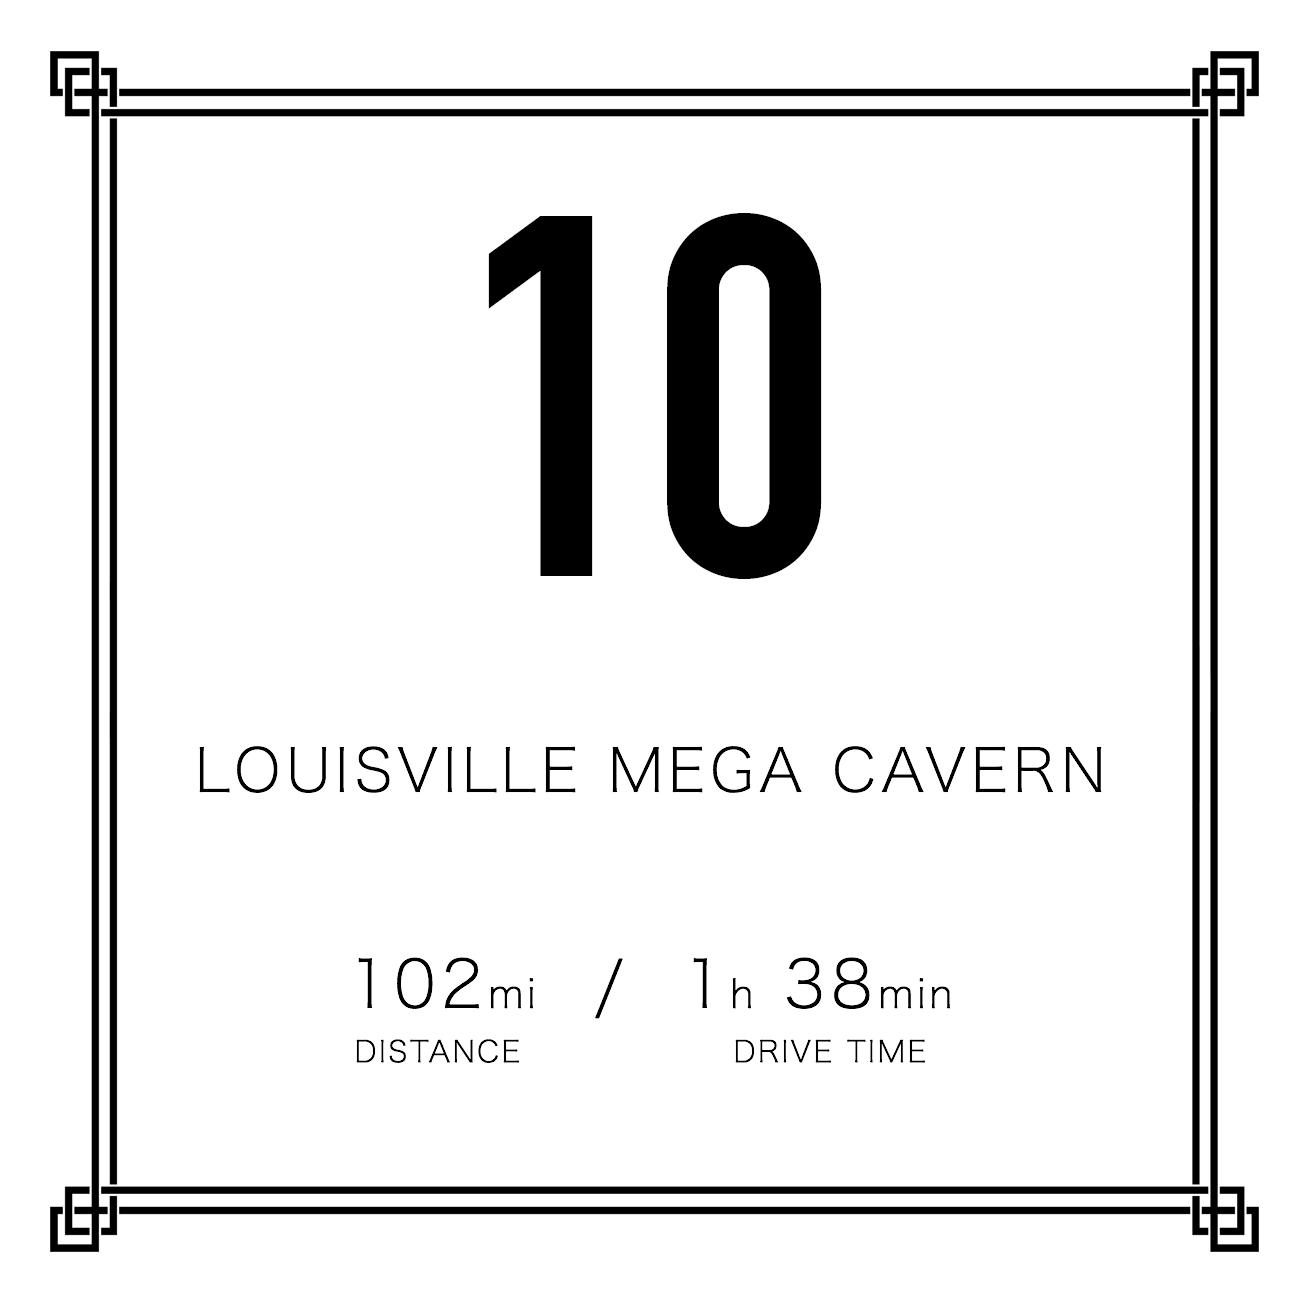 10. Louisville Mega Cavern / DISTANCE: 102 miles / DRIVE TIME: 1 hour 38 minutes / PUBLISHED: 12.4.16